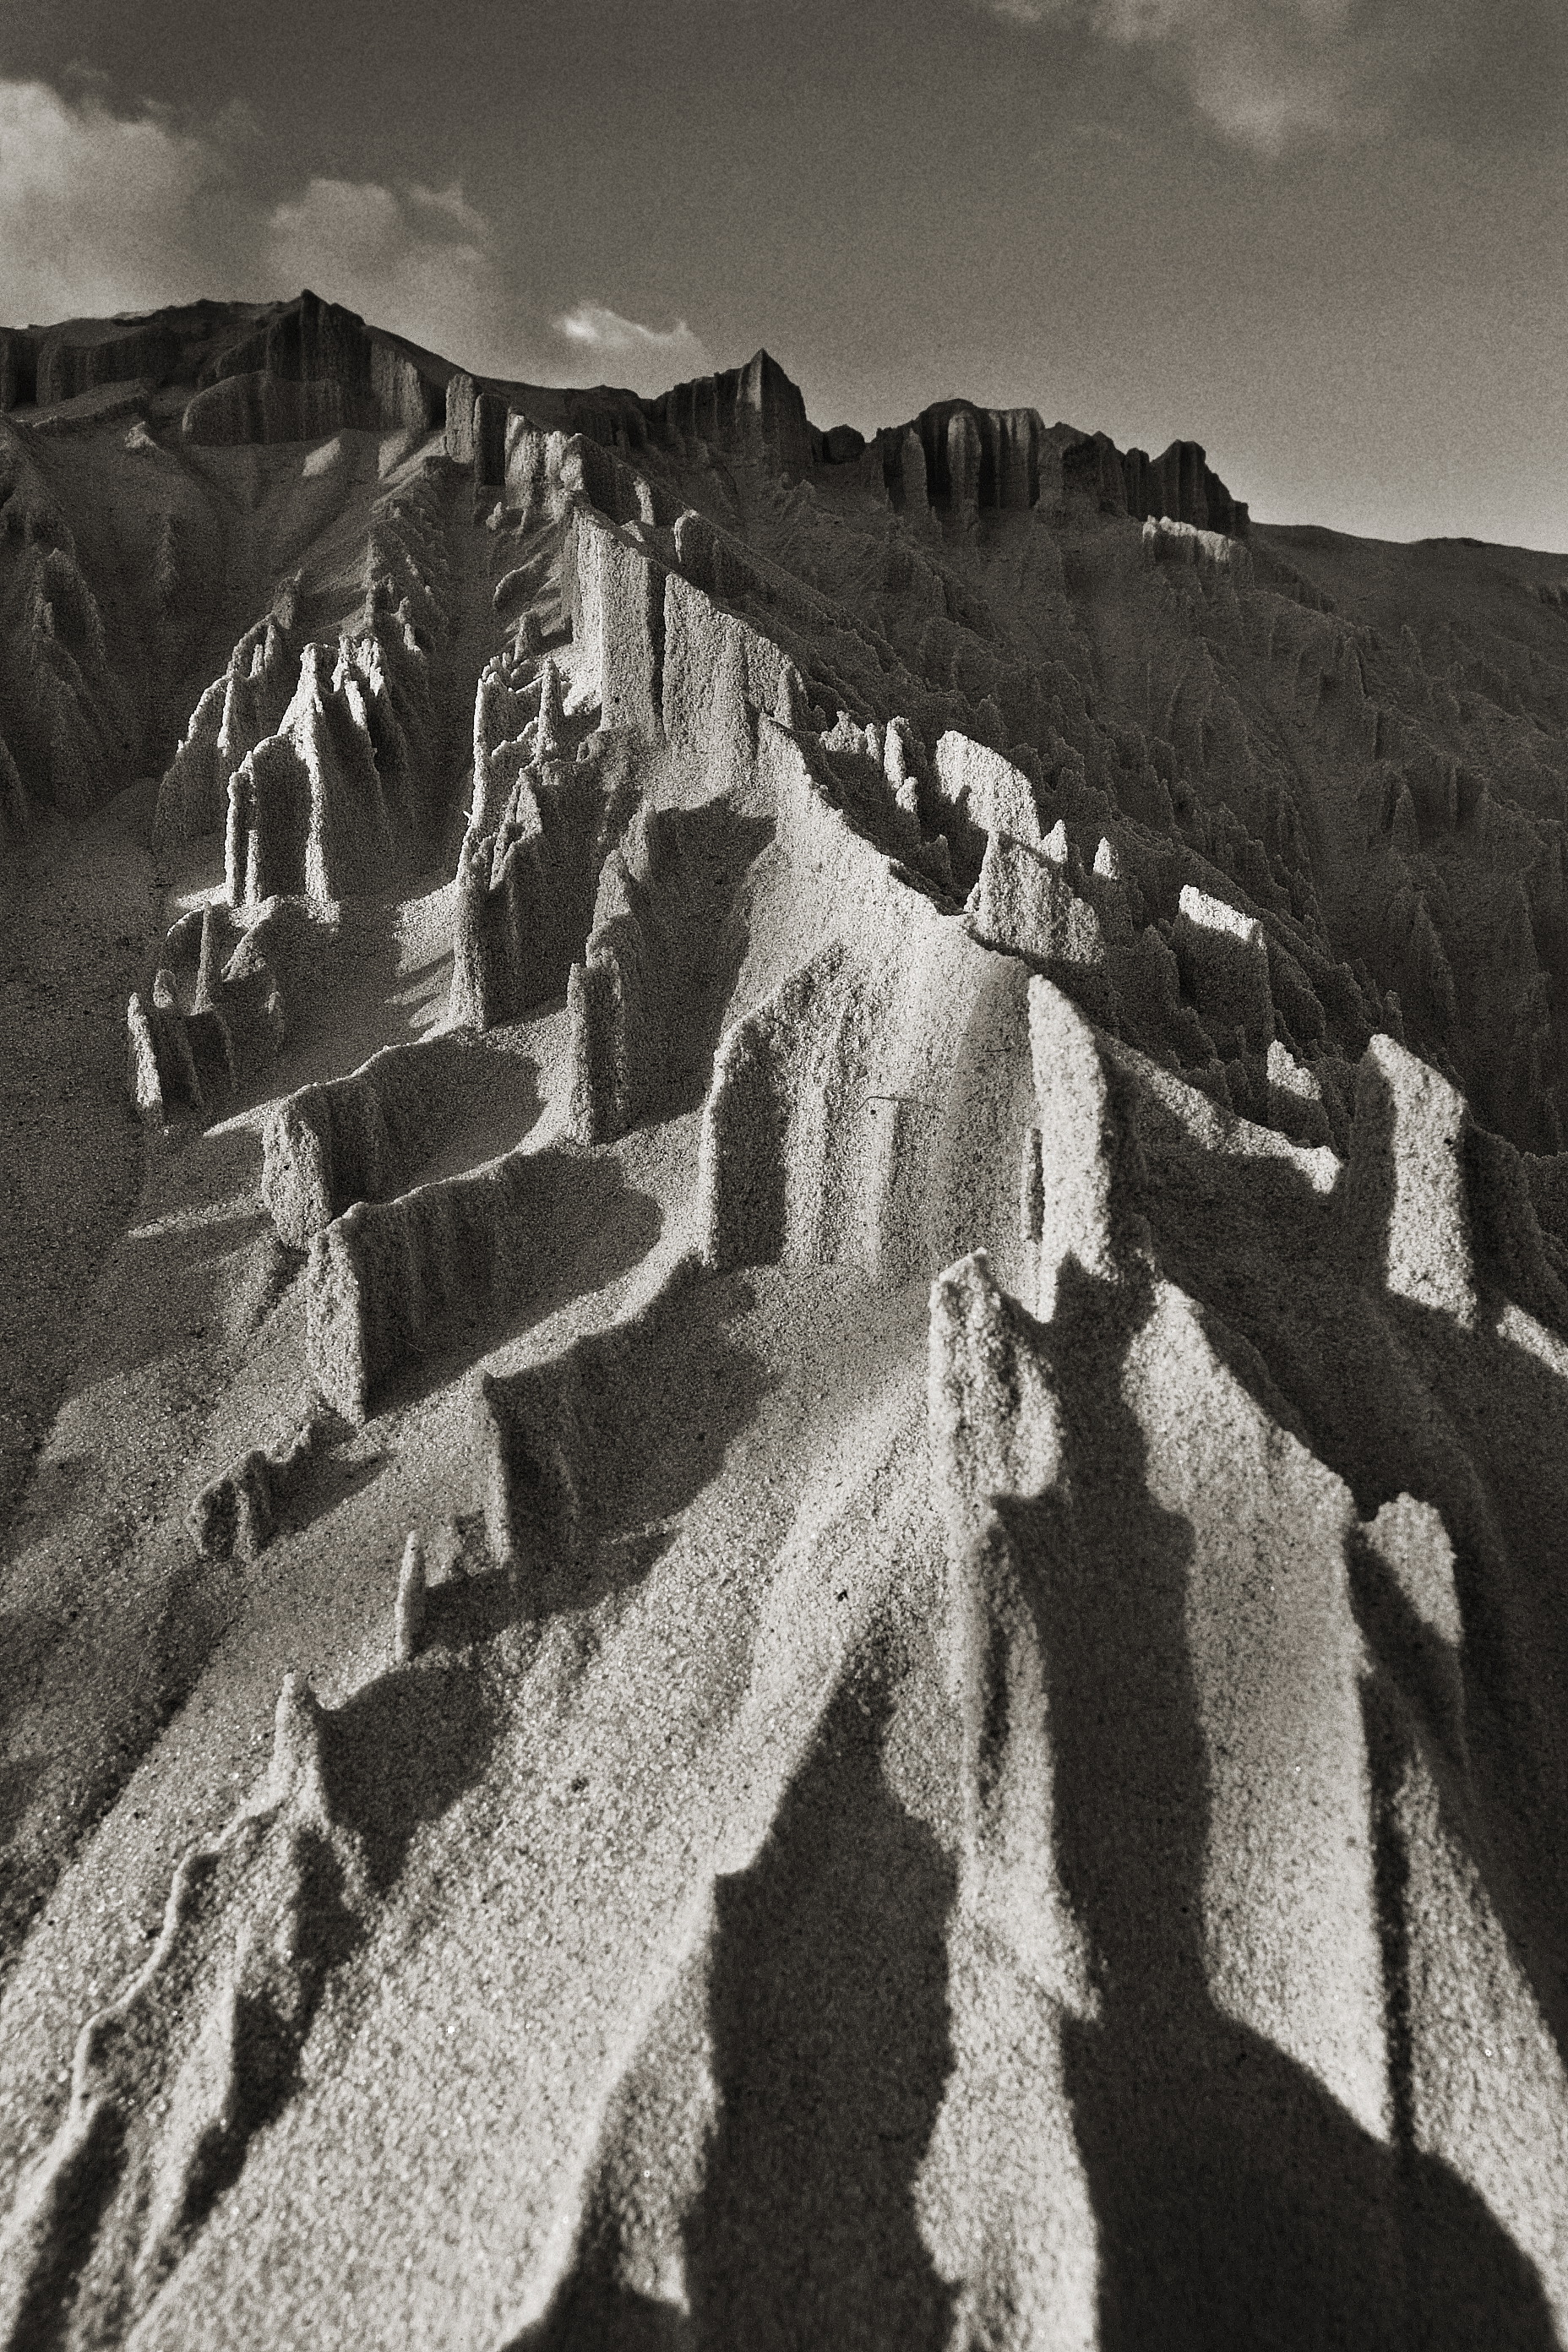 jockeys ridge cliff formation.JPG